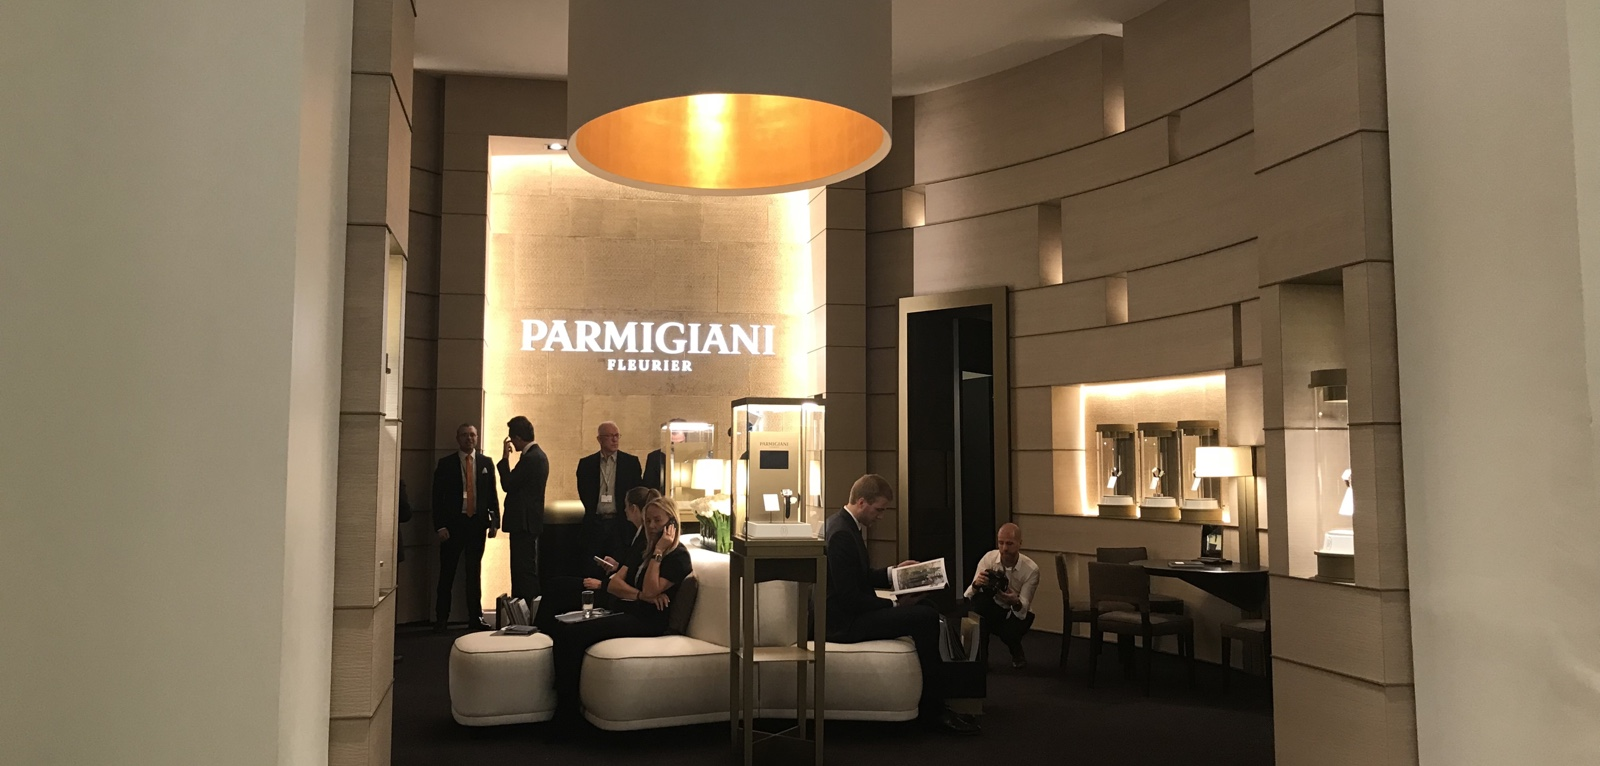 Parmigiani SIHH 2018 - Booth